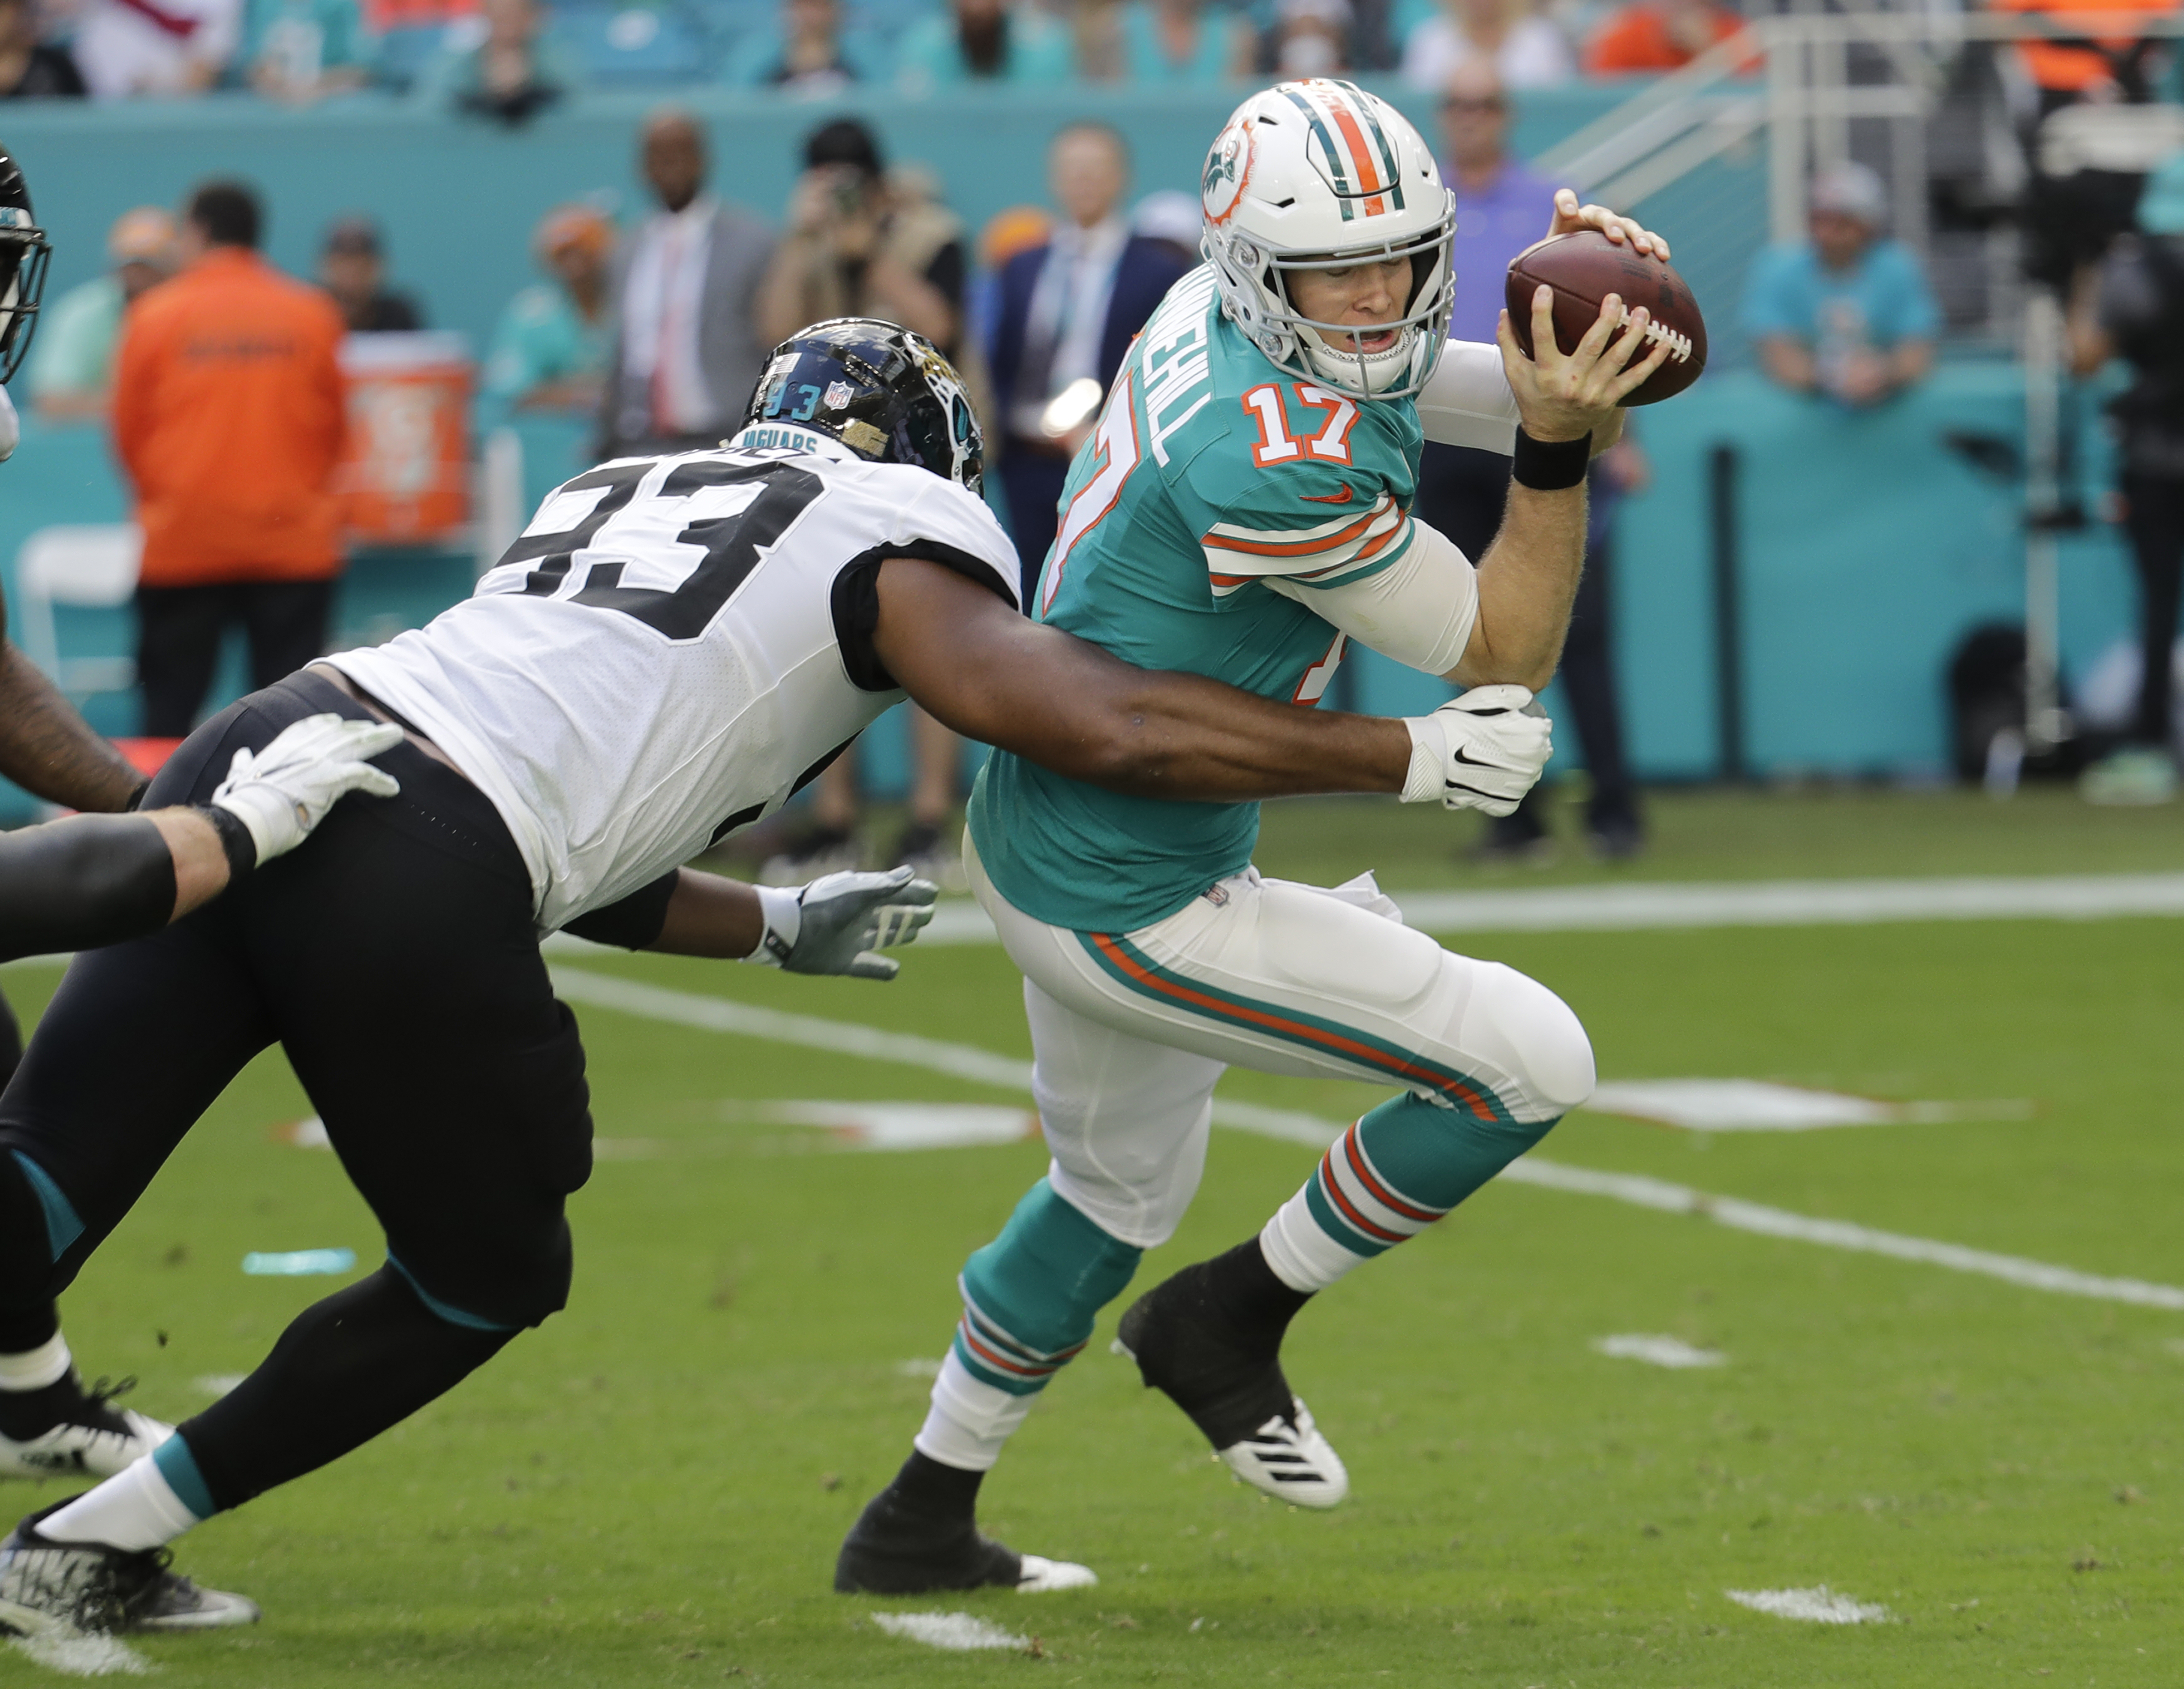 Blake Bortles rallies Jaguars past Dolphins 17-7